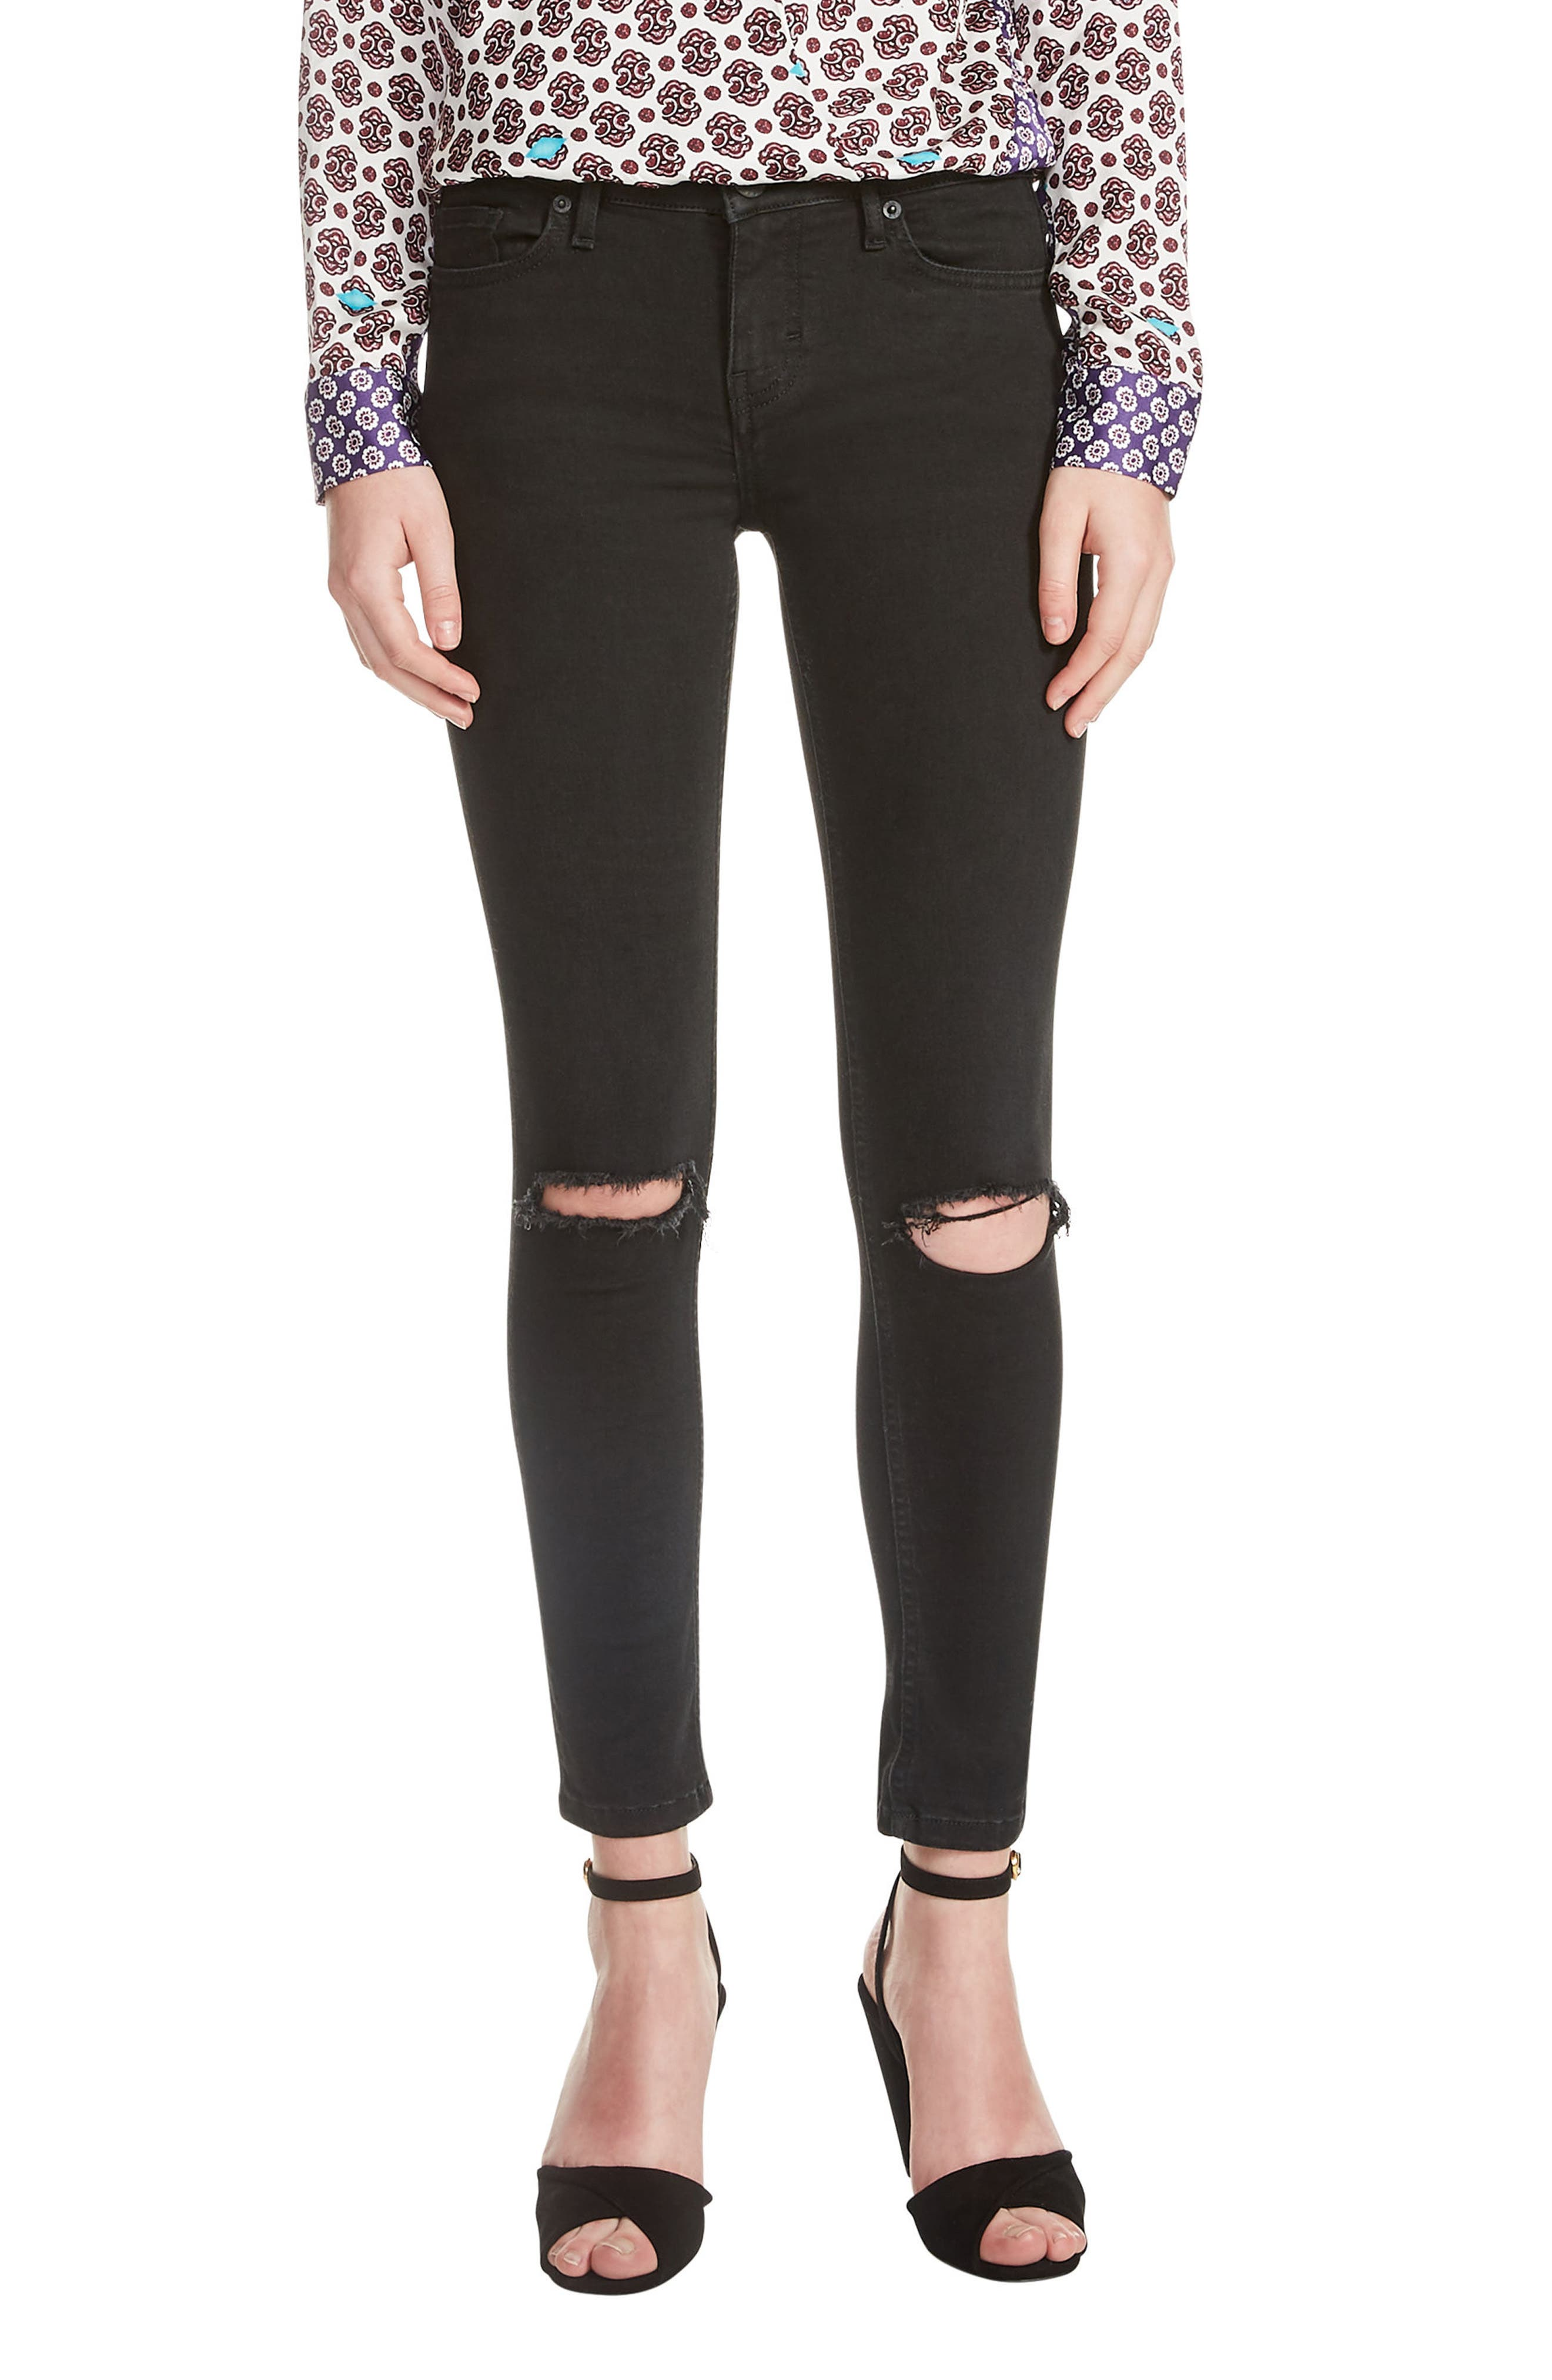 Priska Ripped Bee Embroidery Black Skinny Jeans,                             Main thumbnail 1, color,                             001